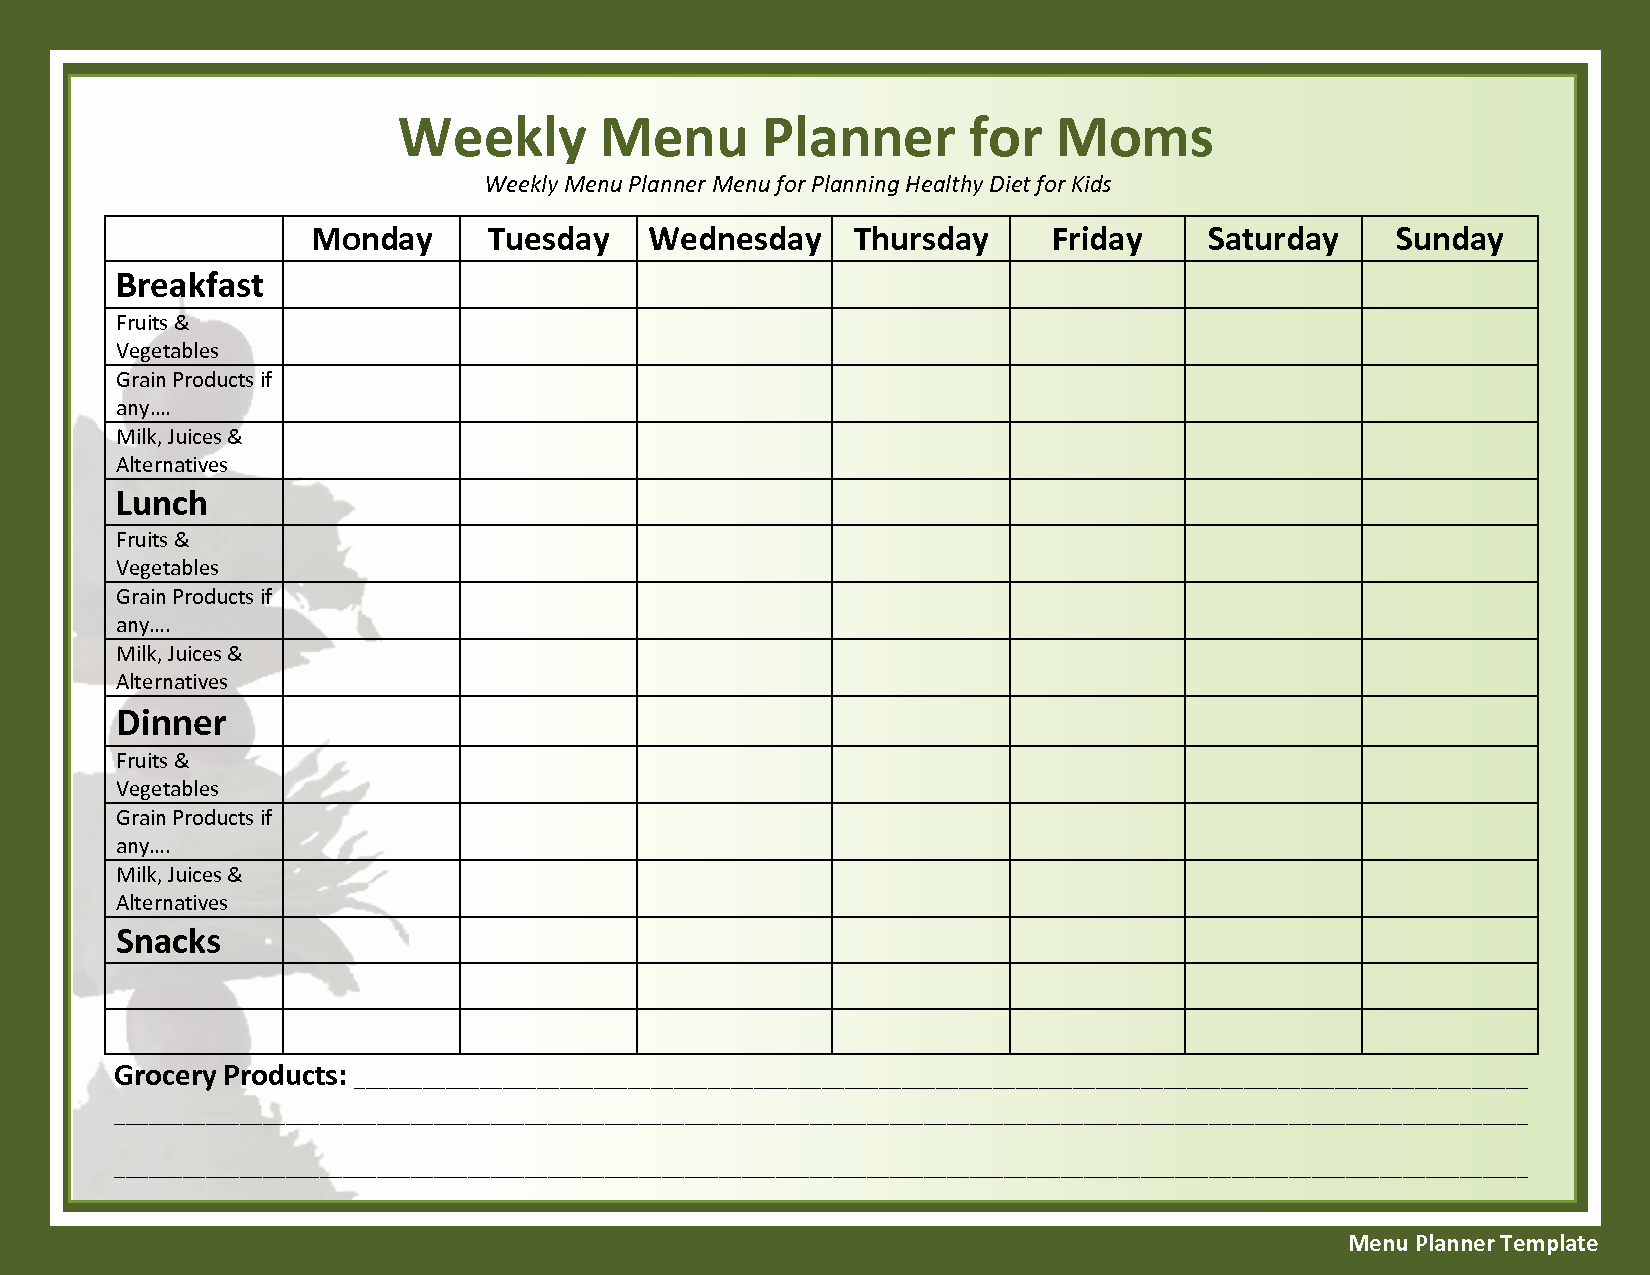 Lunch Menu Template Free Inspirational Weekly Menu Template